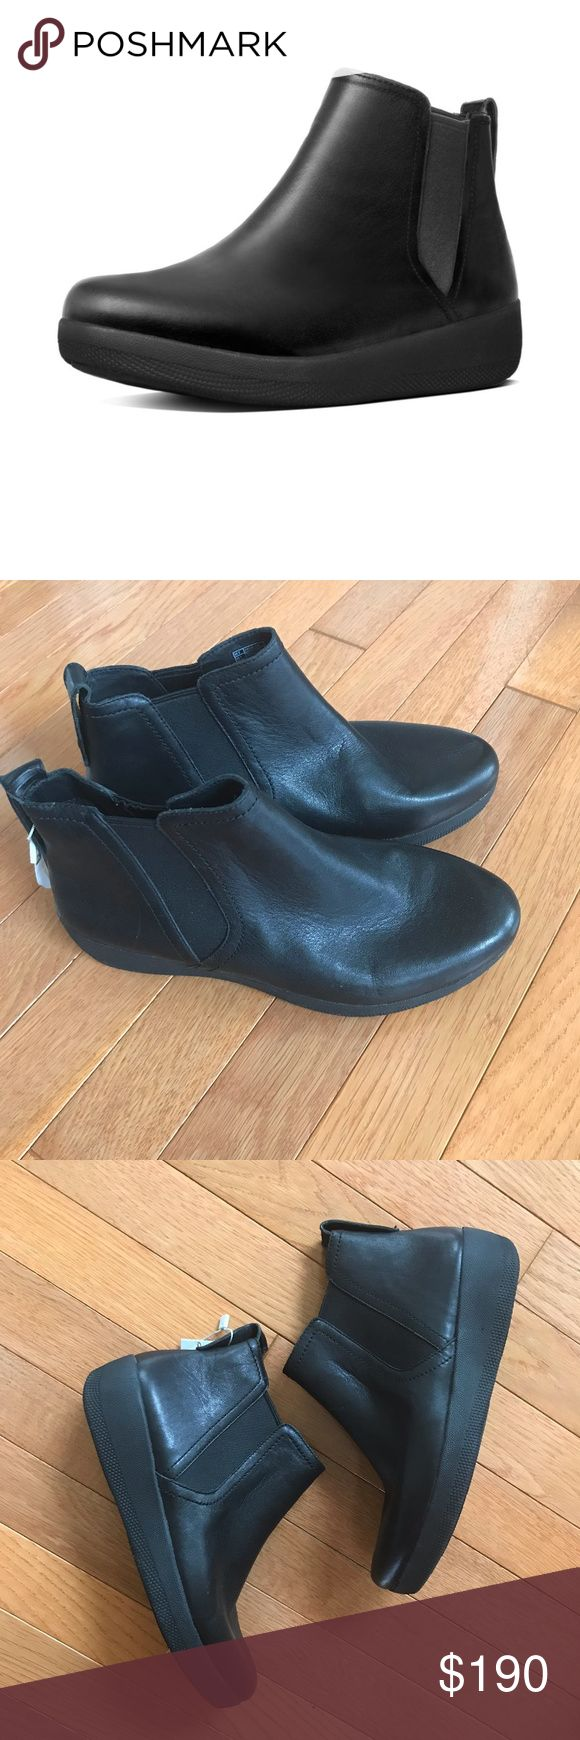 FITFLOP Womens Superchelsea Leather Chelsea Boot 7 FITFLOP Womens Superchelsea Leather Chelsea Black Boots Light Comfort Cushion Size 7 New with tag, no box Fast shipping Fitflop Shoes Ankle Boots & Booties